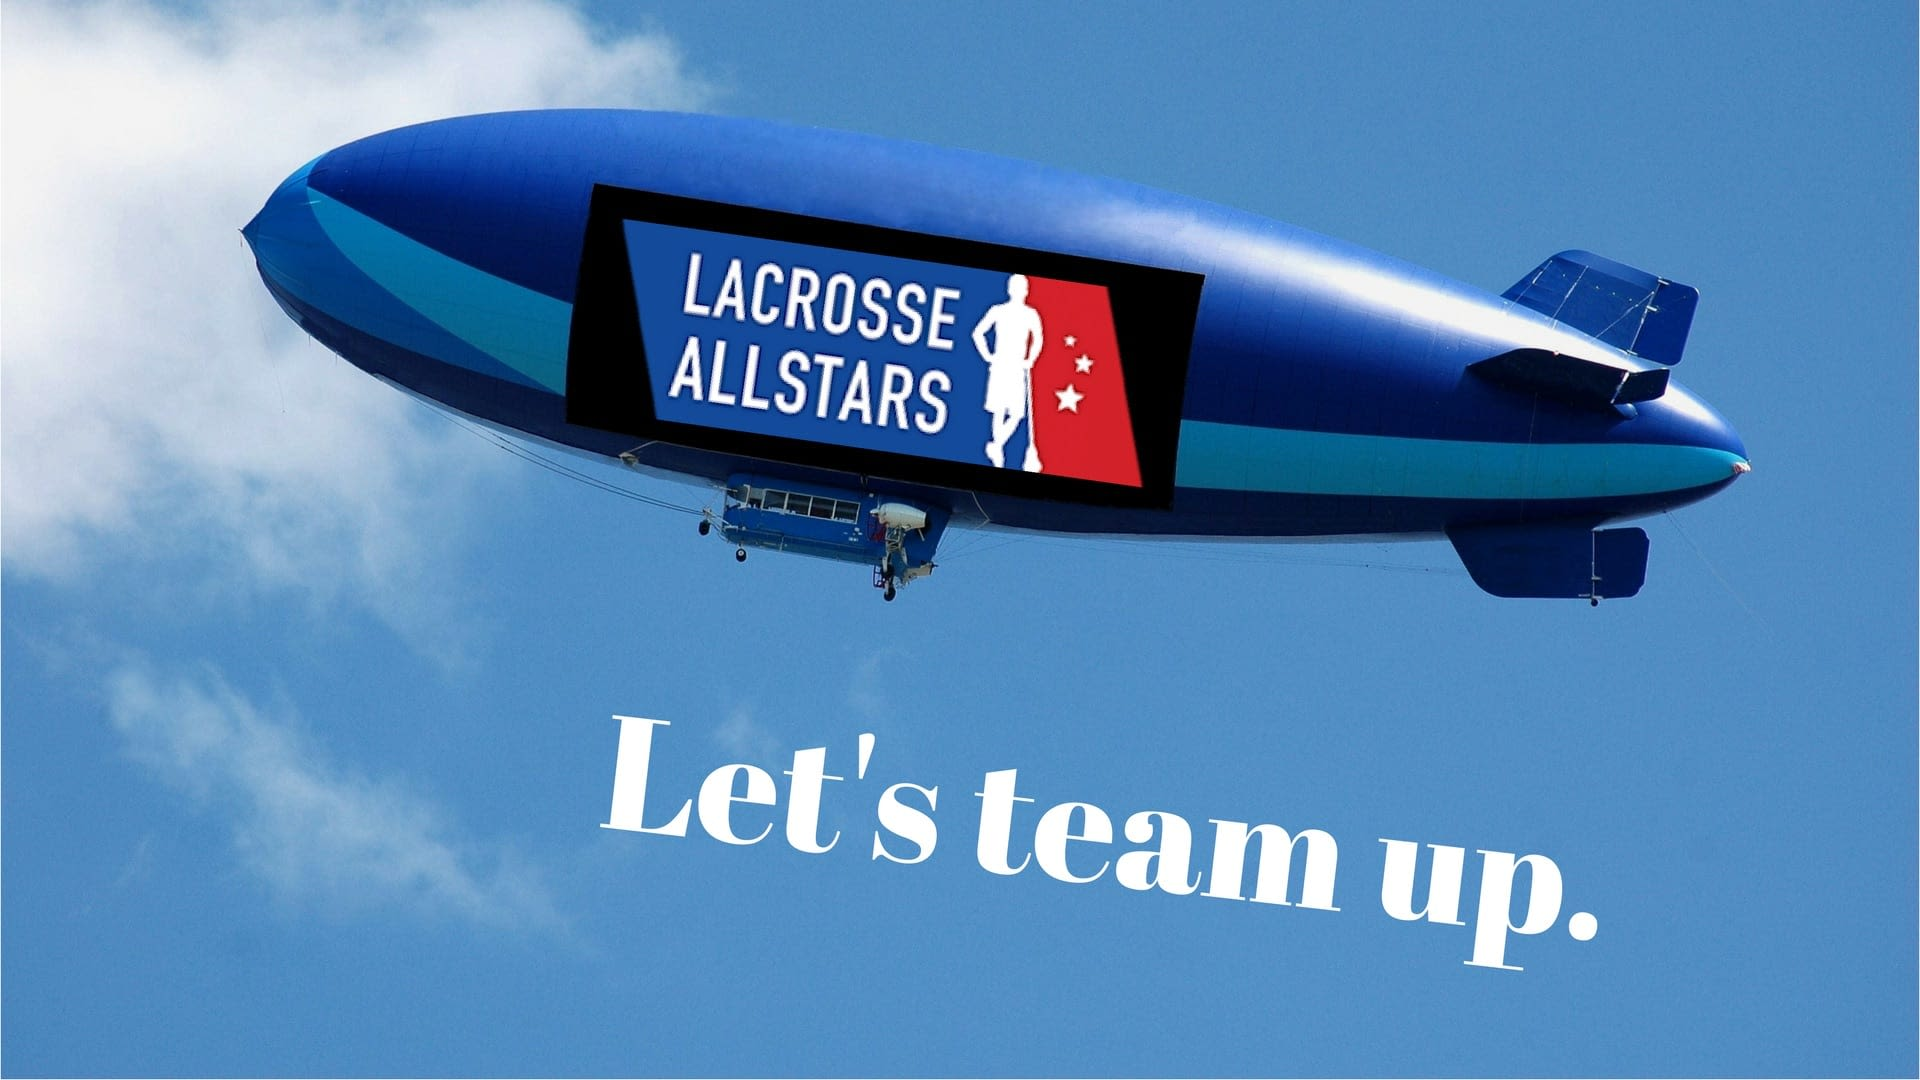 team up with lacrosse all stars